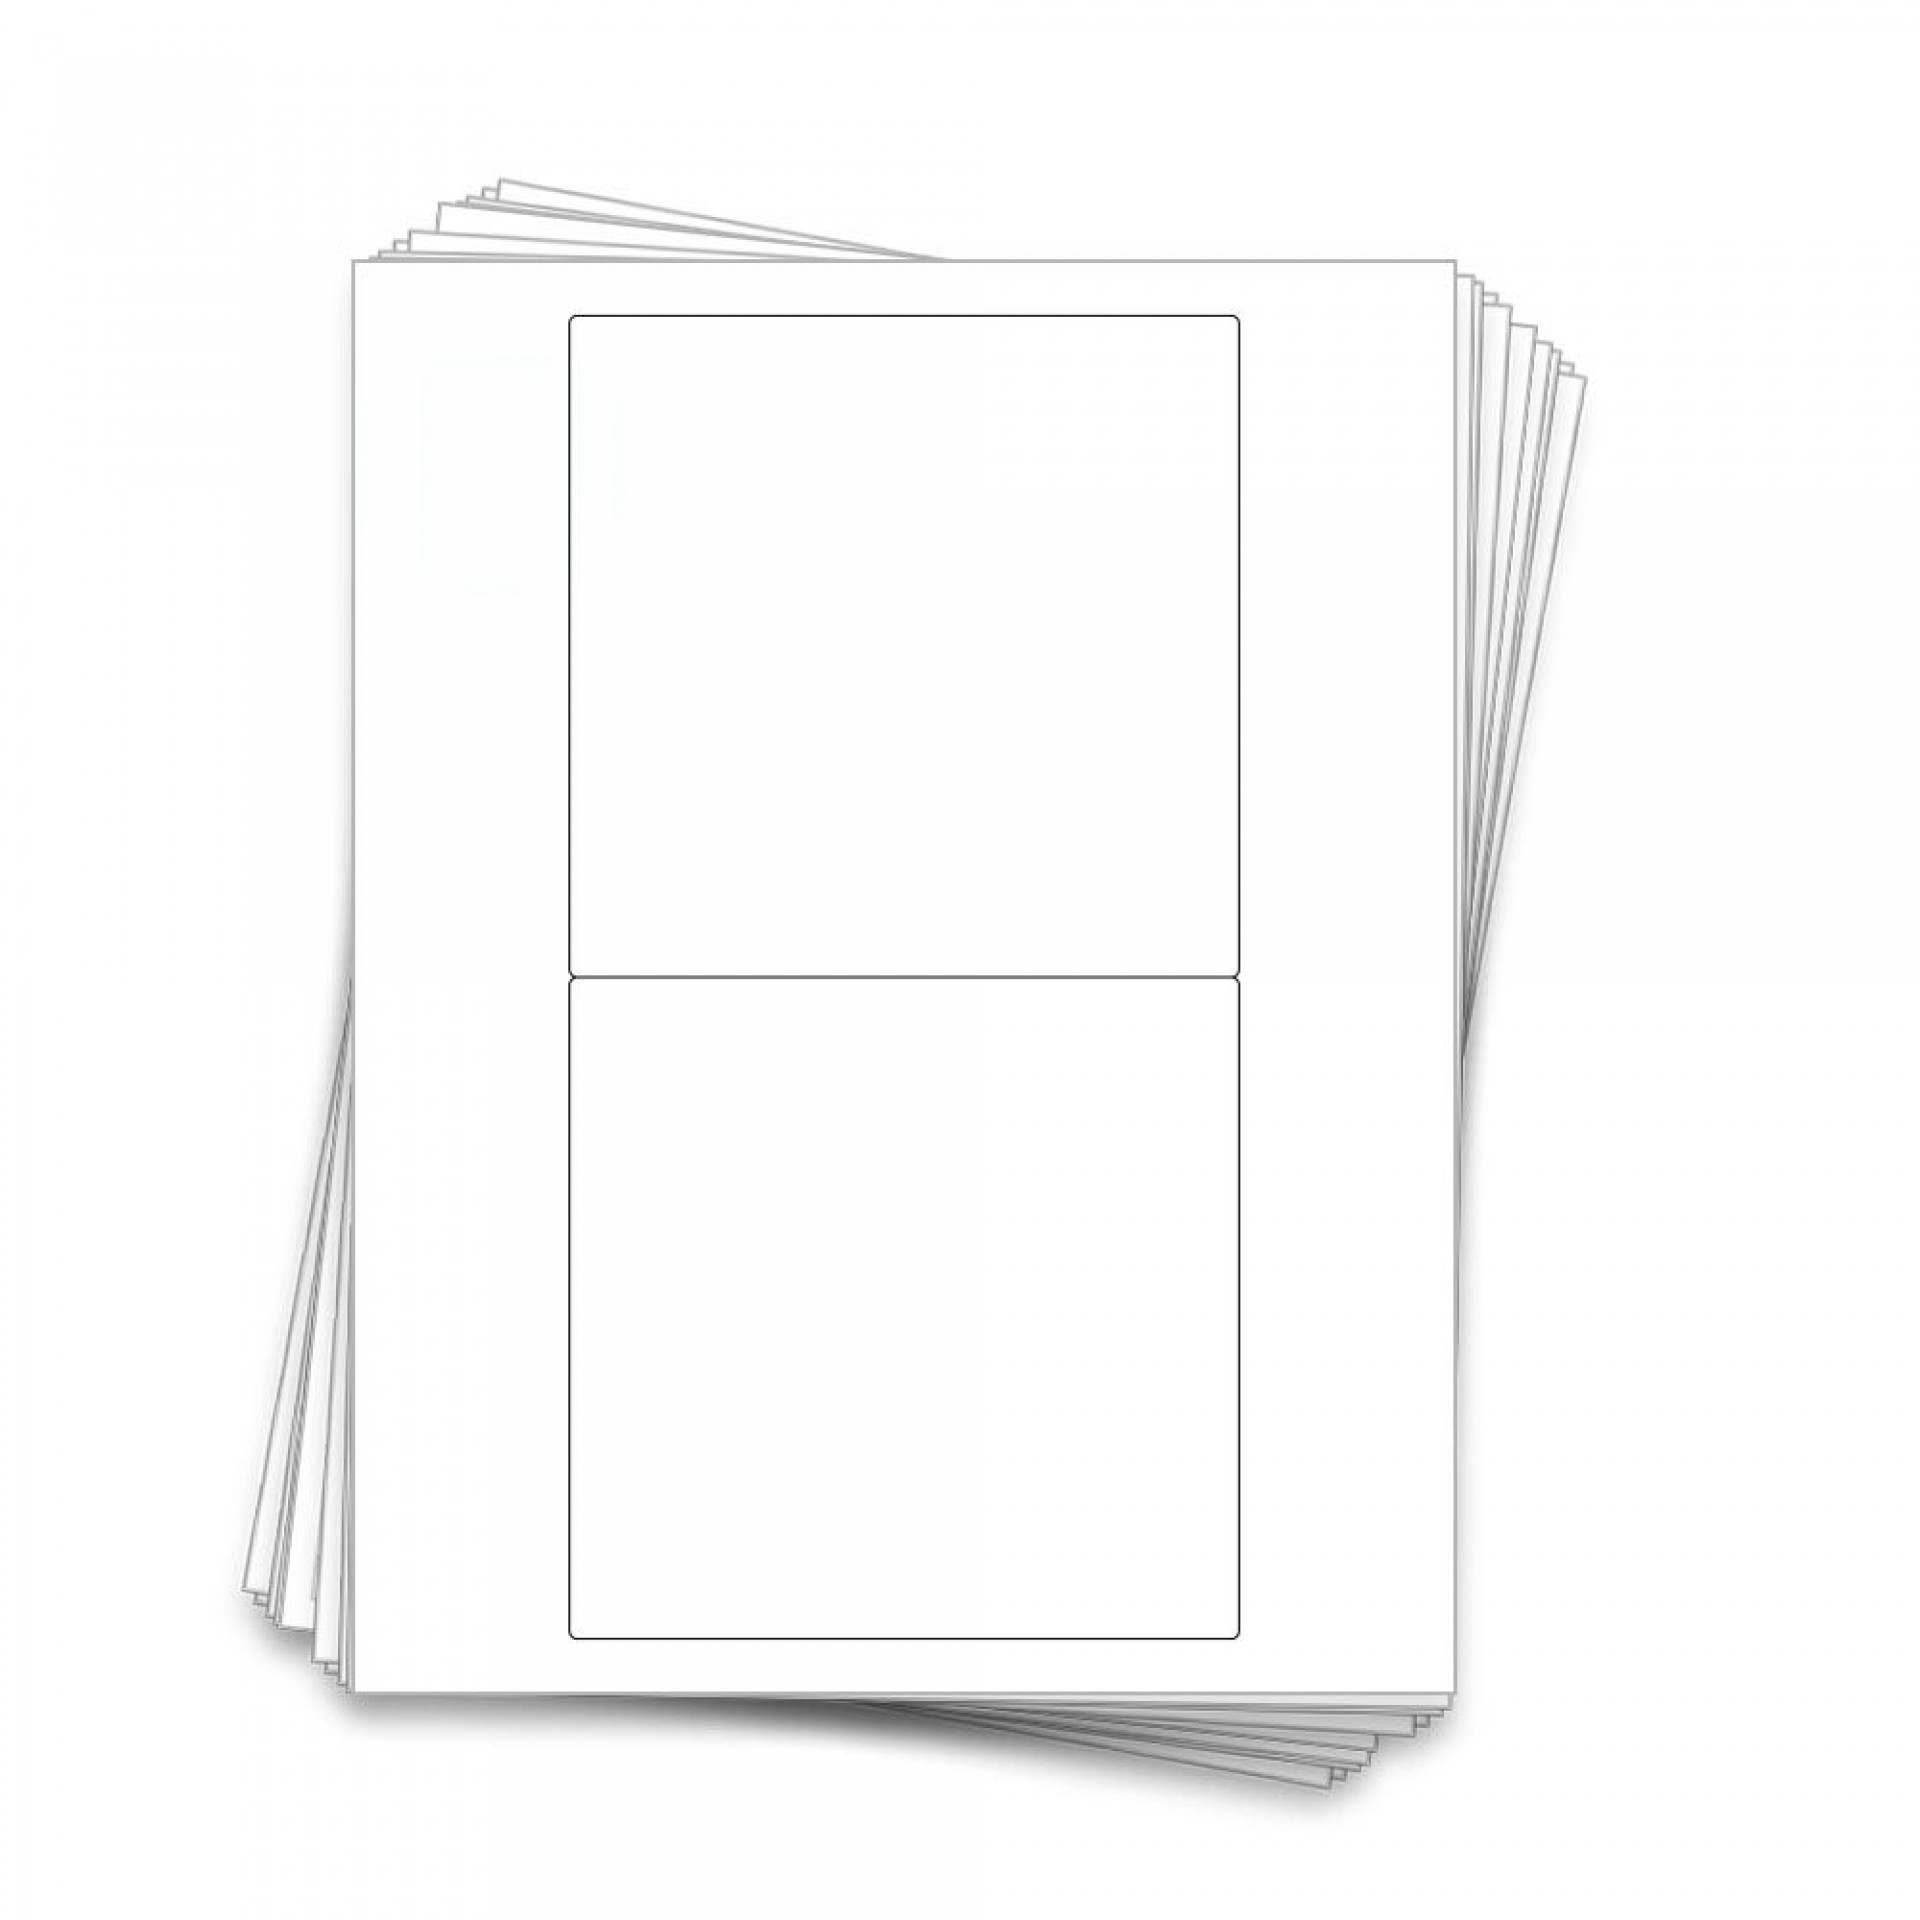 008 Fantastic Candy Bar Wrapper Template Microsoft Word Picture  Blank For Printable Free1920